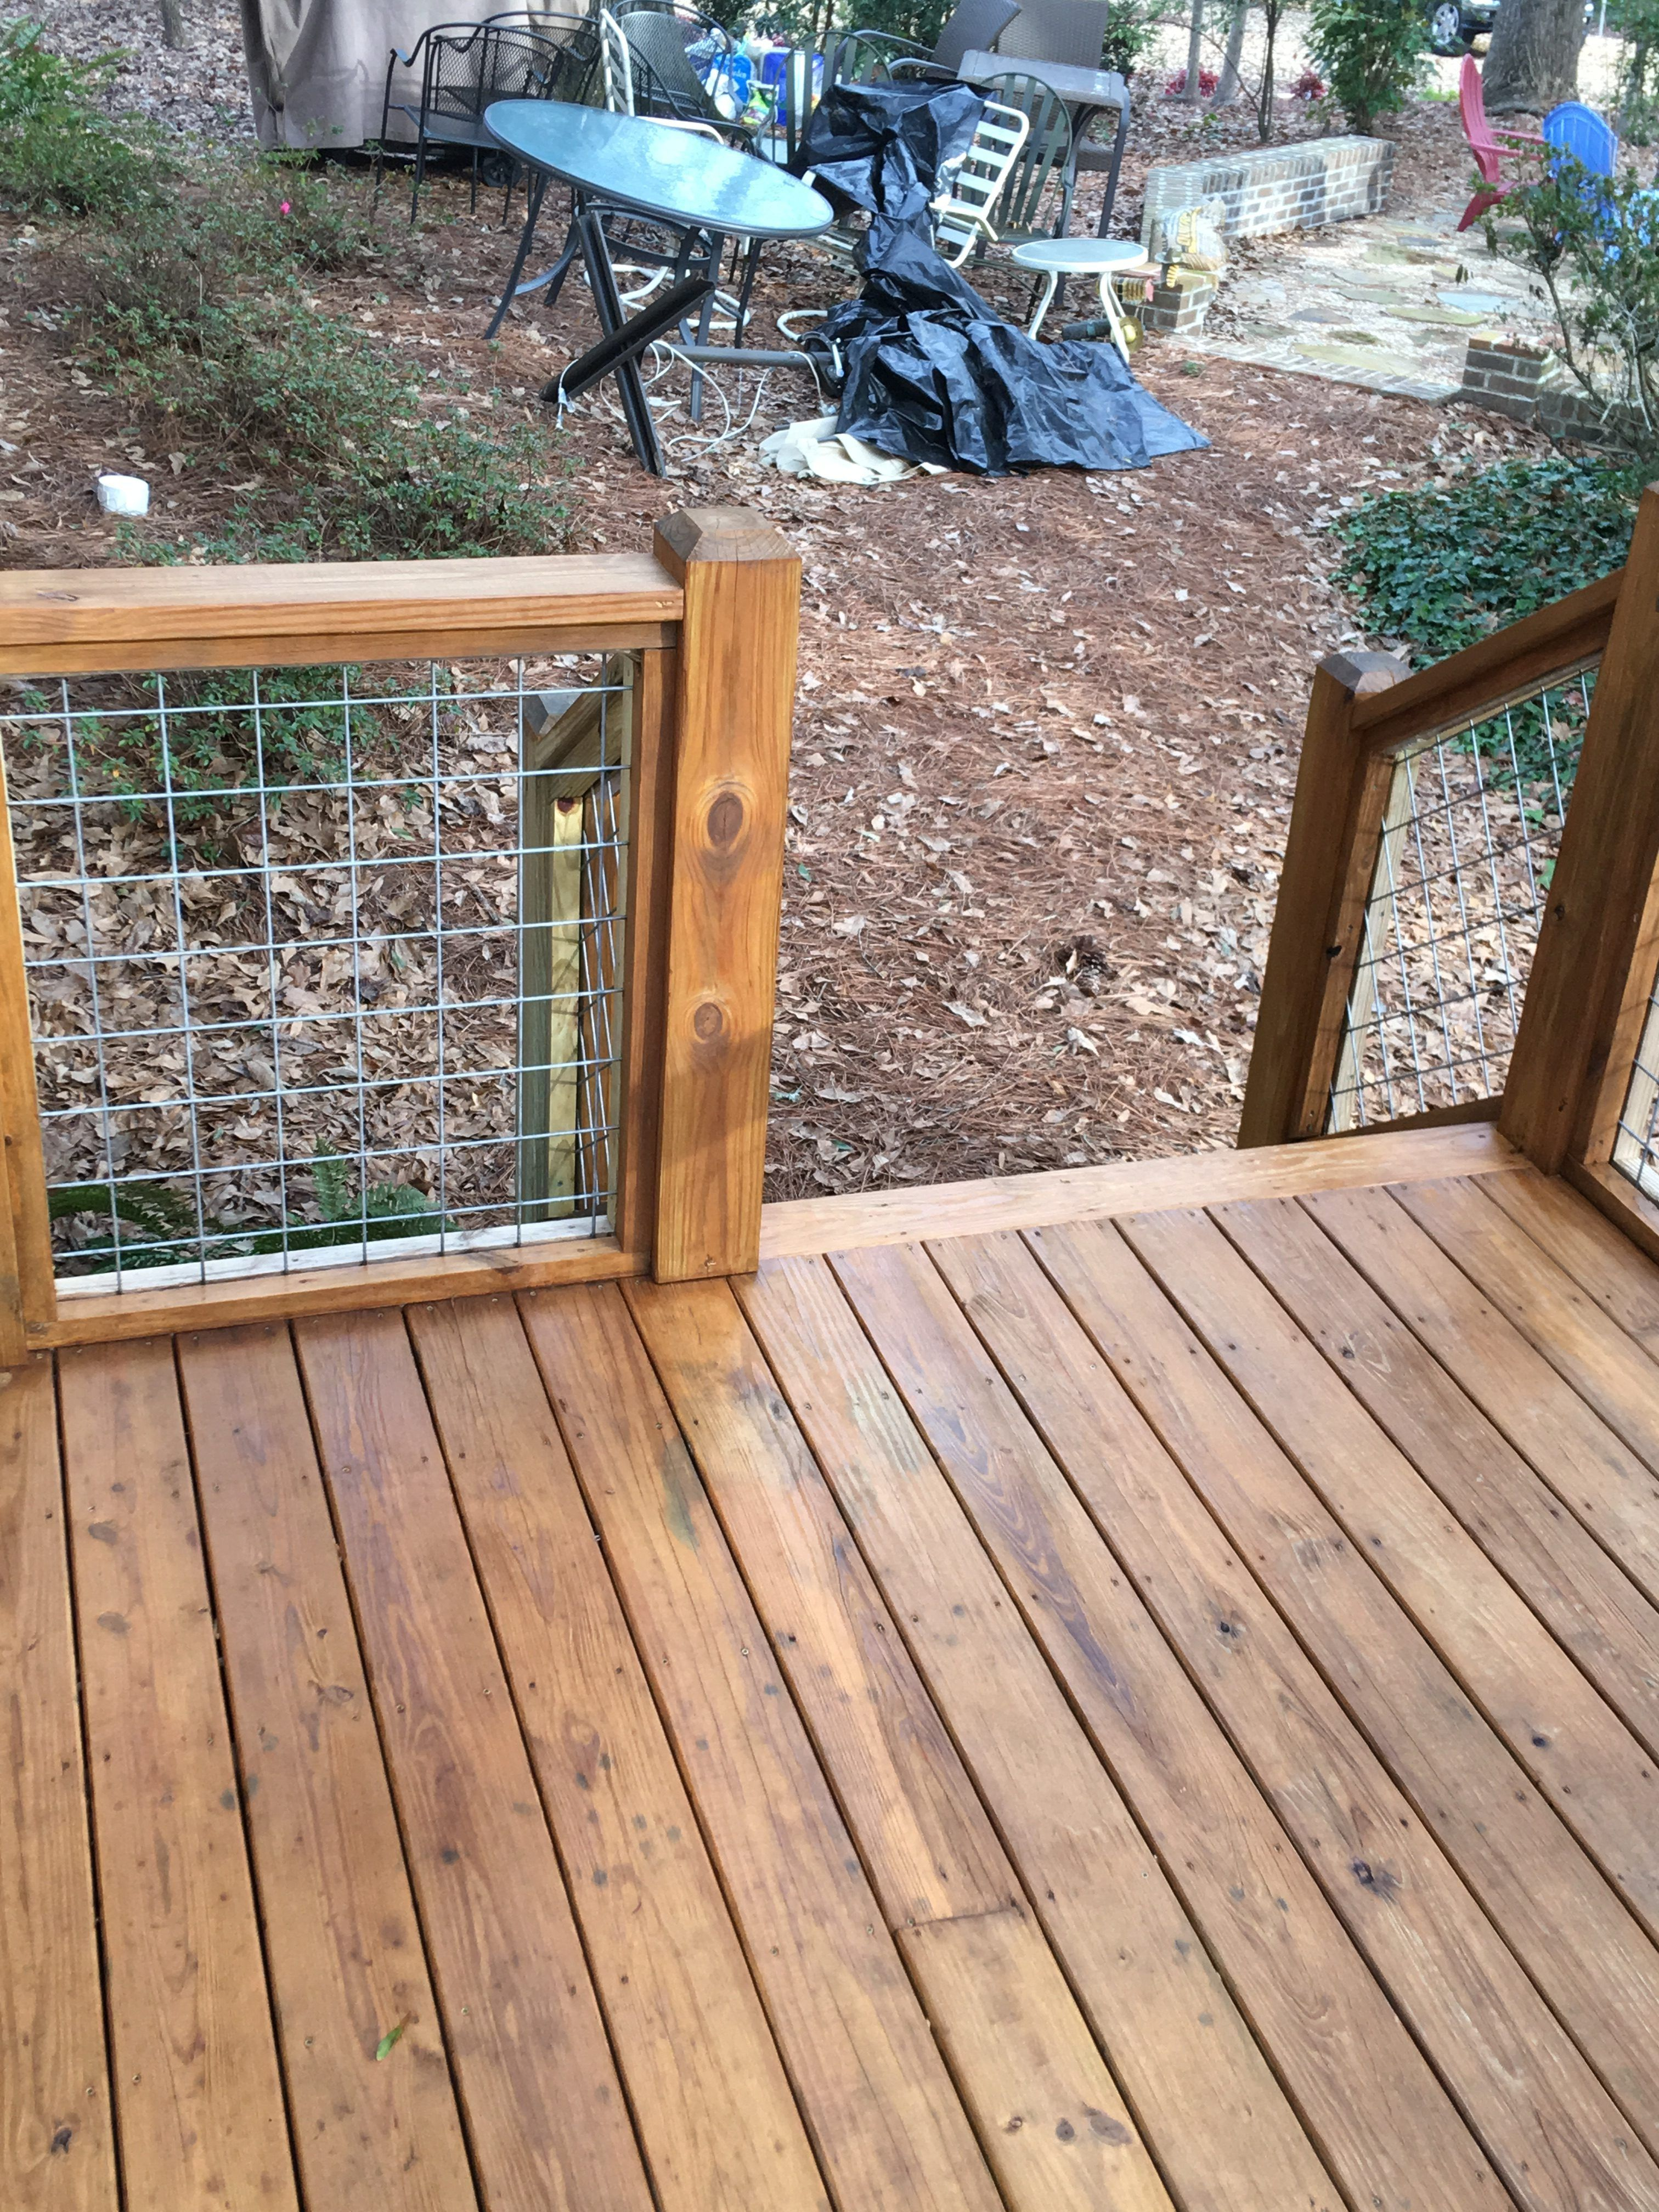 Restore A Deck Wood Stain Review Best Deck Stain Reviews Ratings Staining Wood Wood Deck Stain Staining Deck